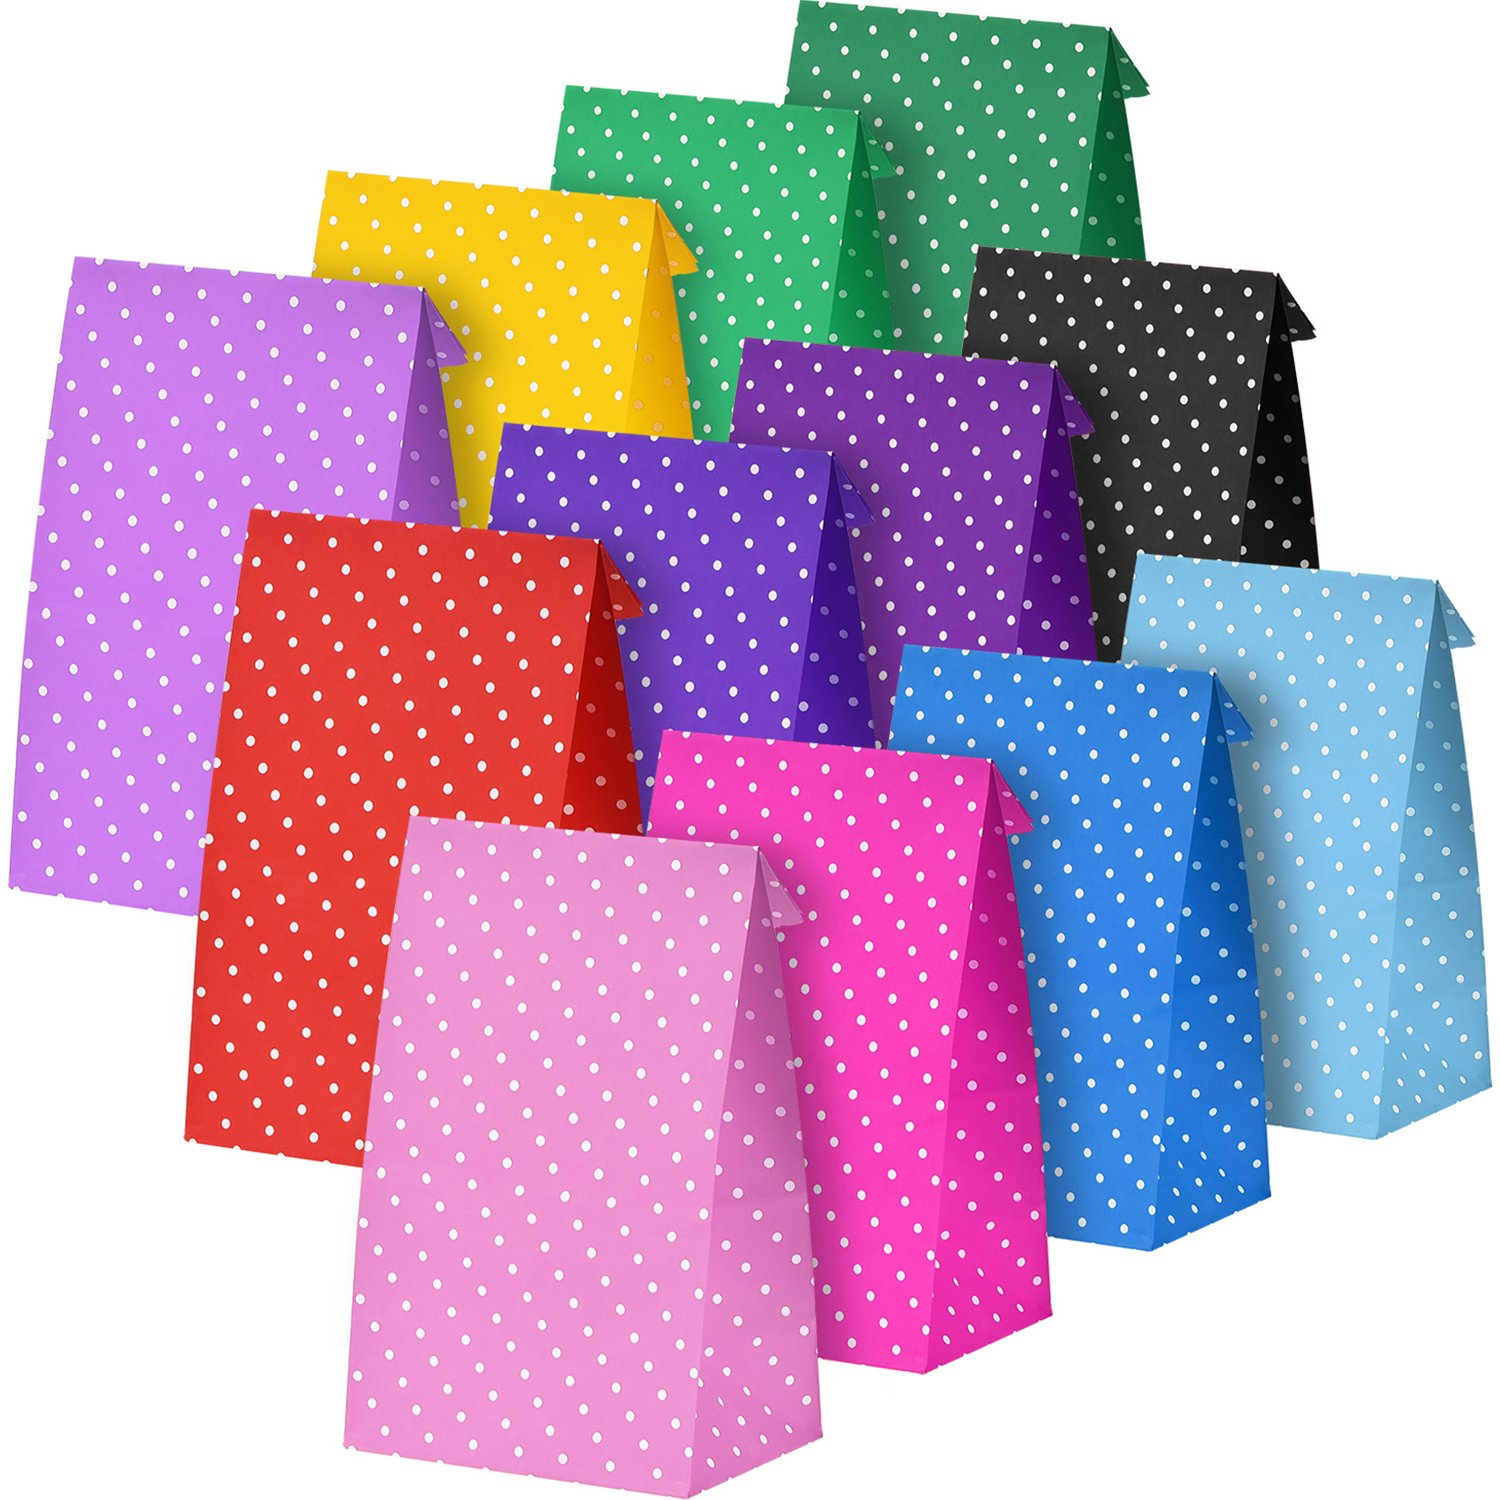 BBTO 24 Pieces Dot Paper Bags Party Gift Grocery Bag Lunch Flat Bottom Craft Paper Bags, Multicolor